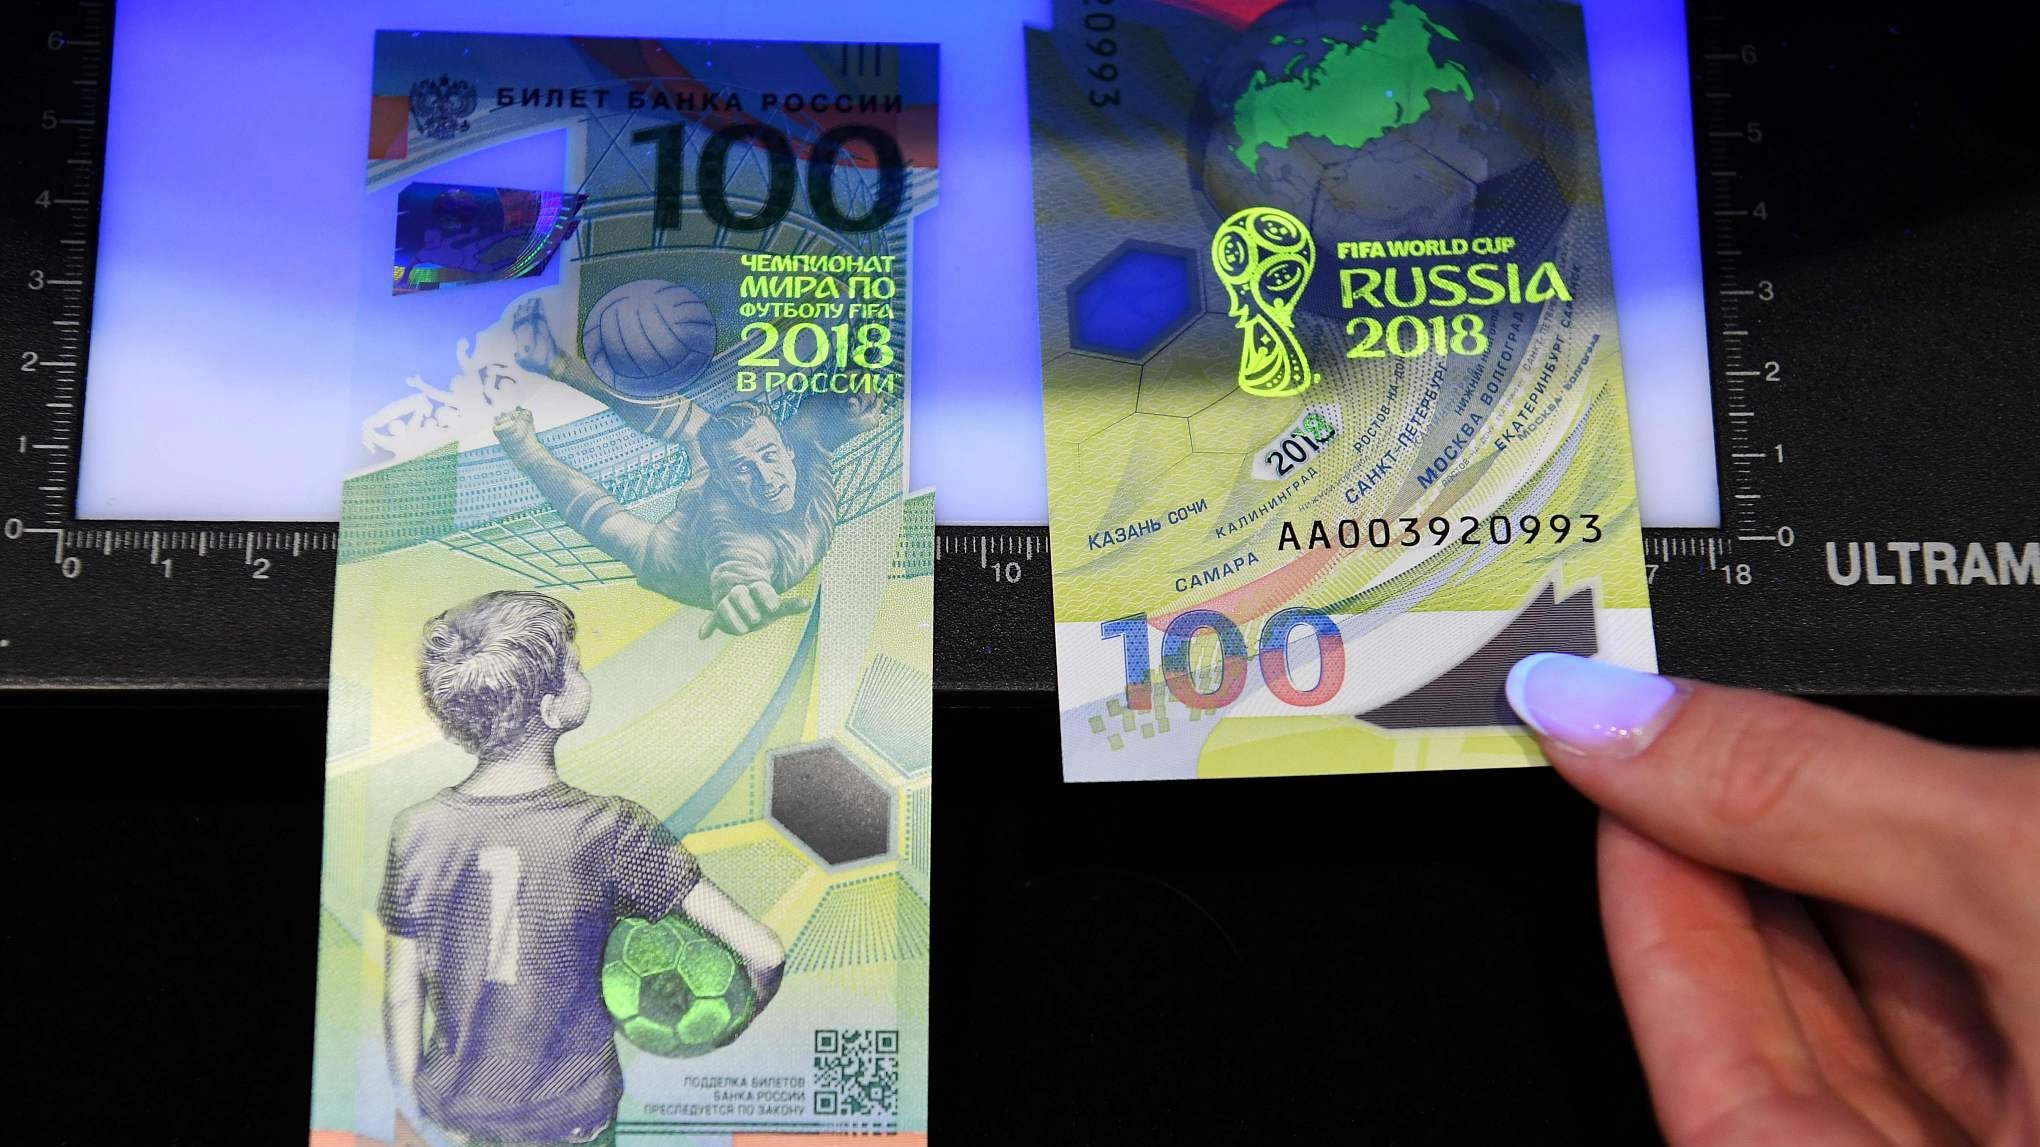 Russia World Cup: New currency depicting legendary Soviet goalkeeper unveils